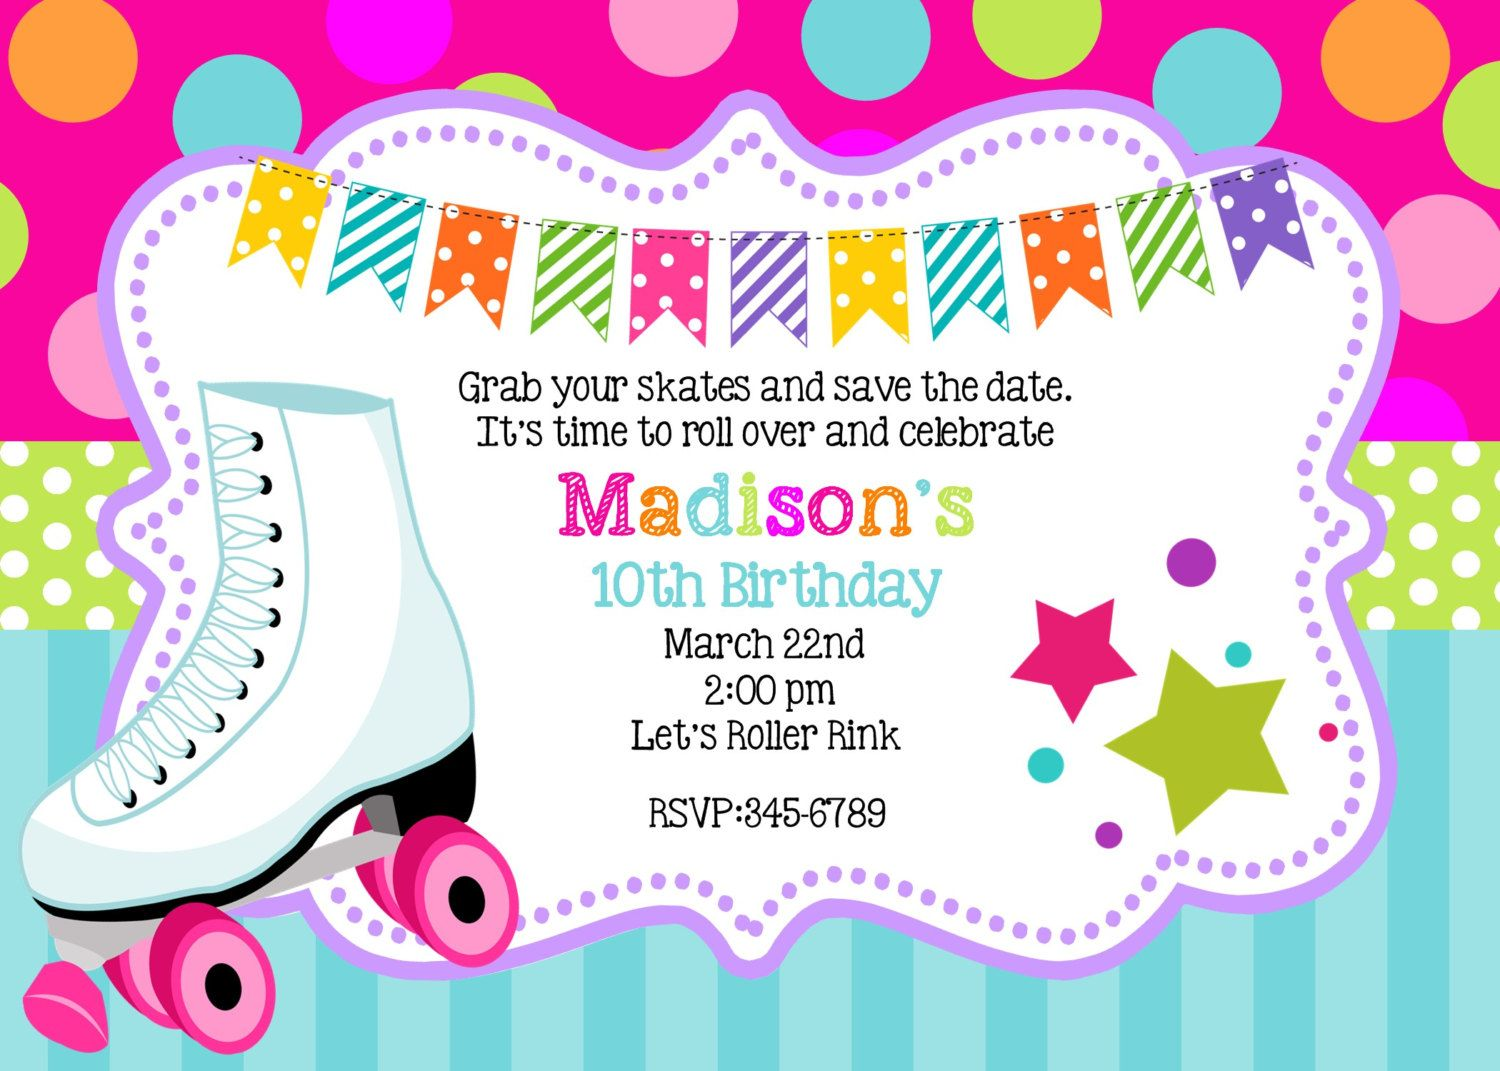 Free Roller Skating Party Invitation Template: | to print ...